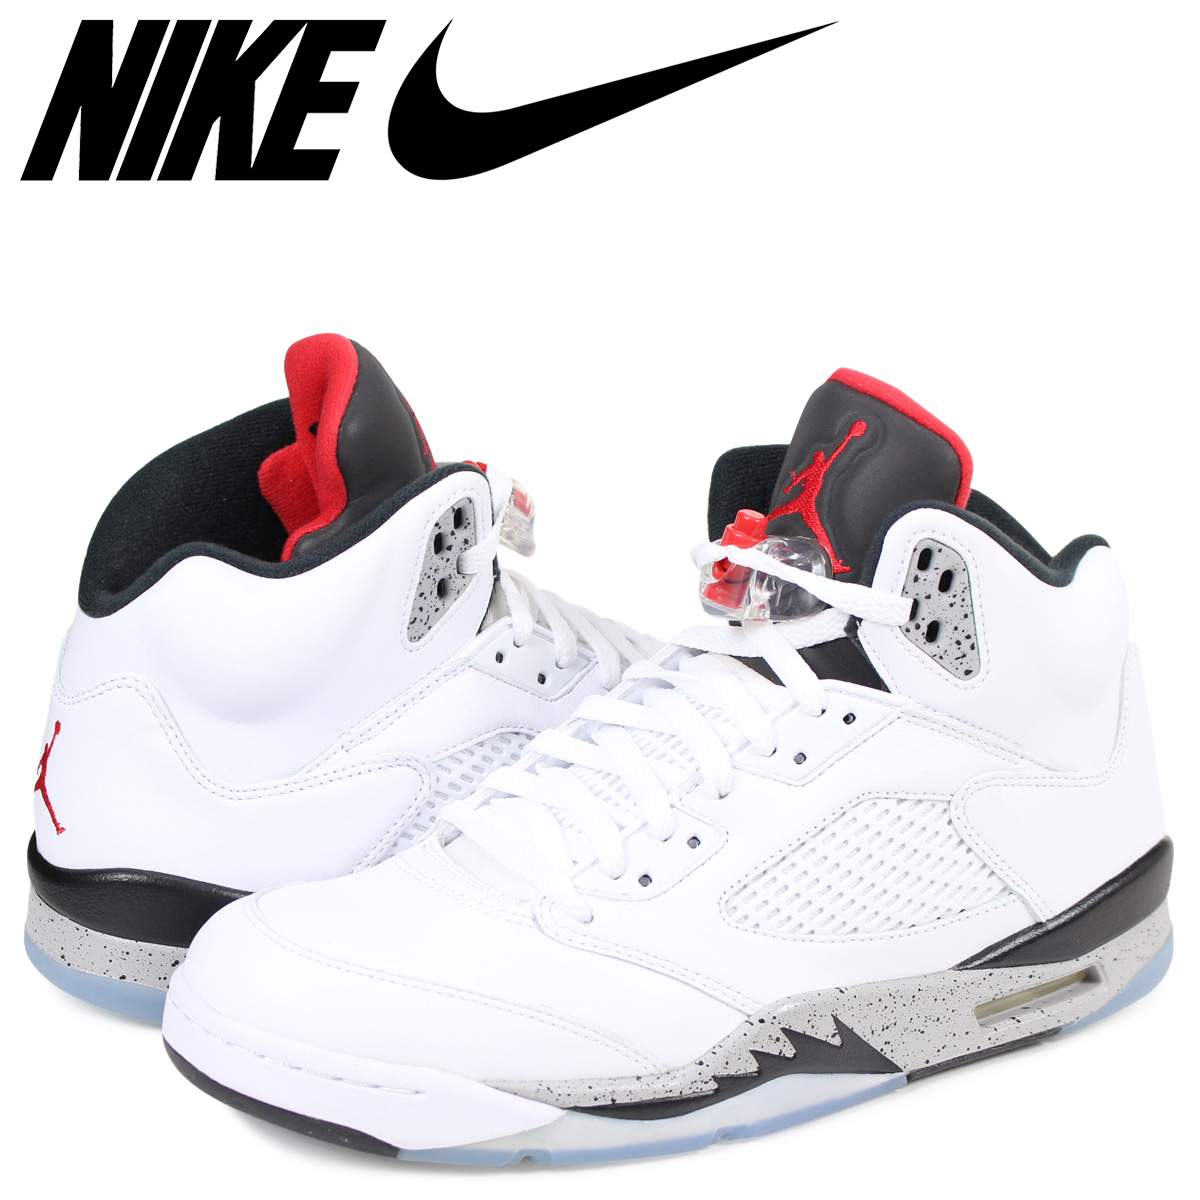 Whats up Sports  NIKE AIR JORDAN 5 RETRO WHITE CEMENT Nike Air Jordan 5  nostalgic sneakers men white 136 8c9ef7ea5